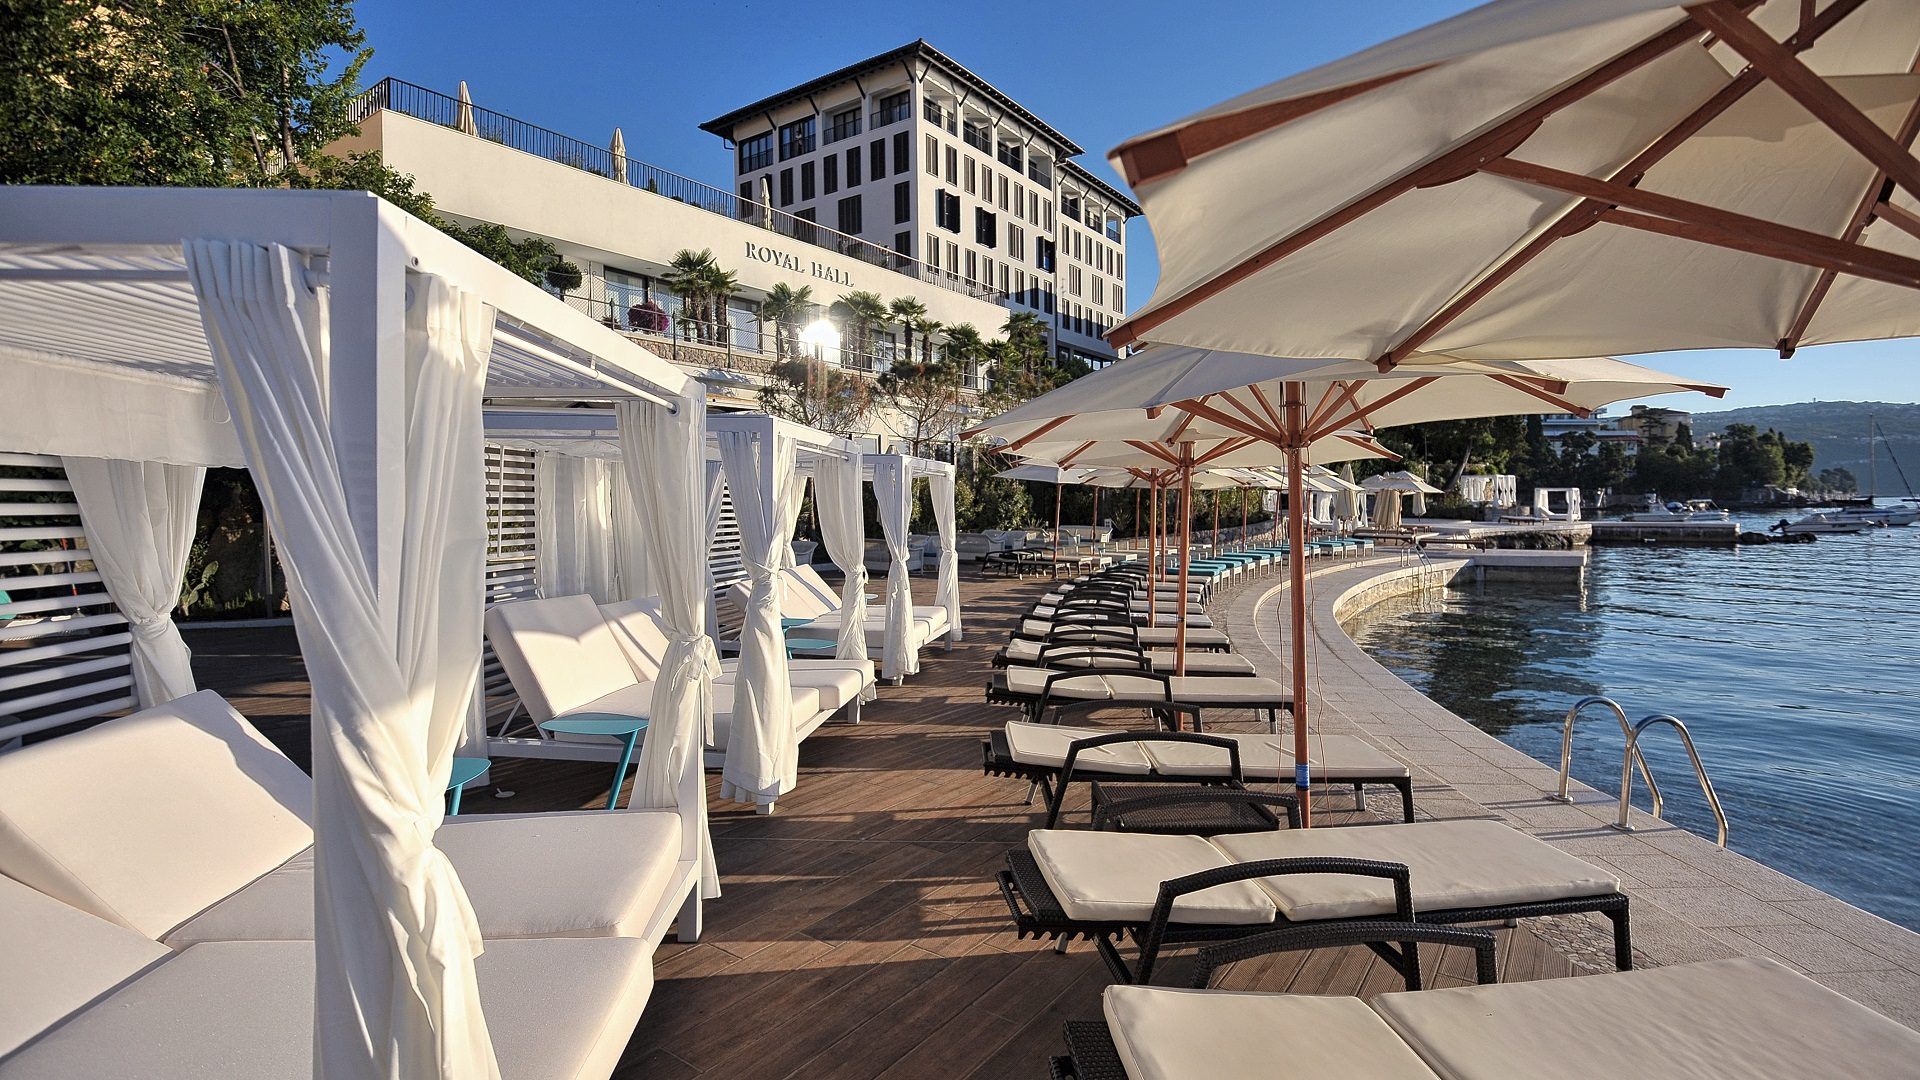 amadria park royal hotel in opatija croatia official web